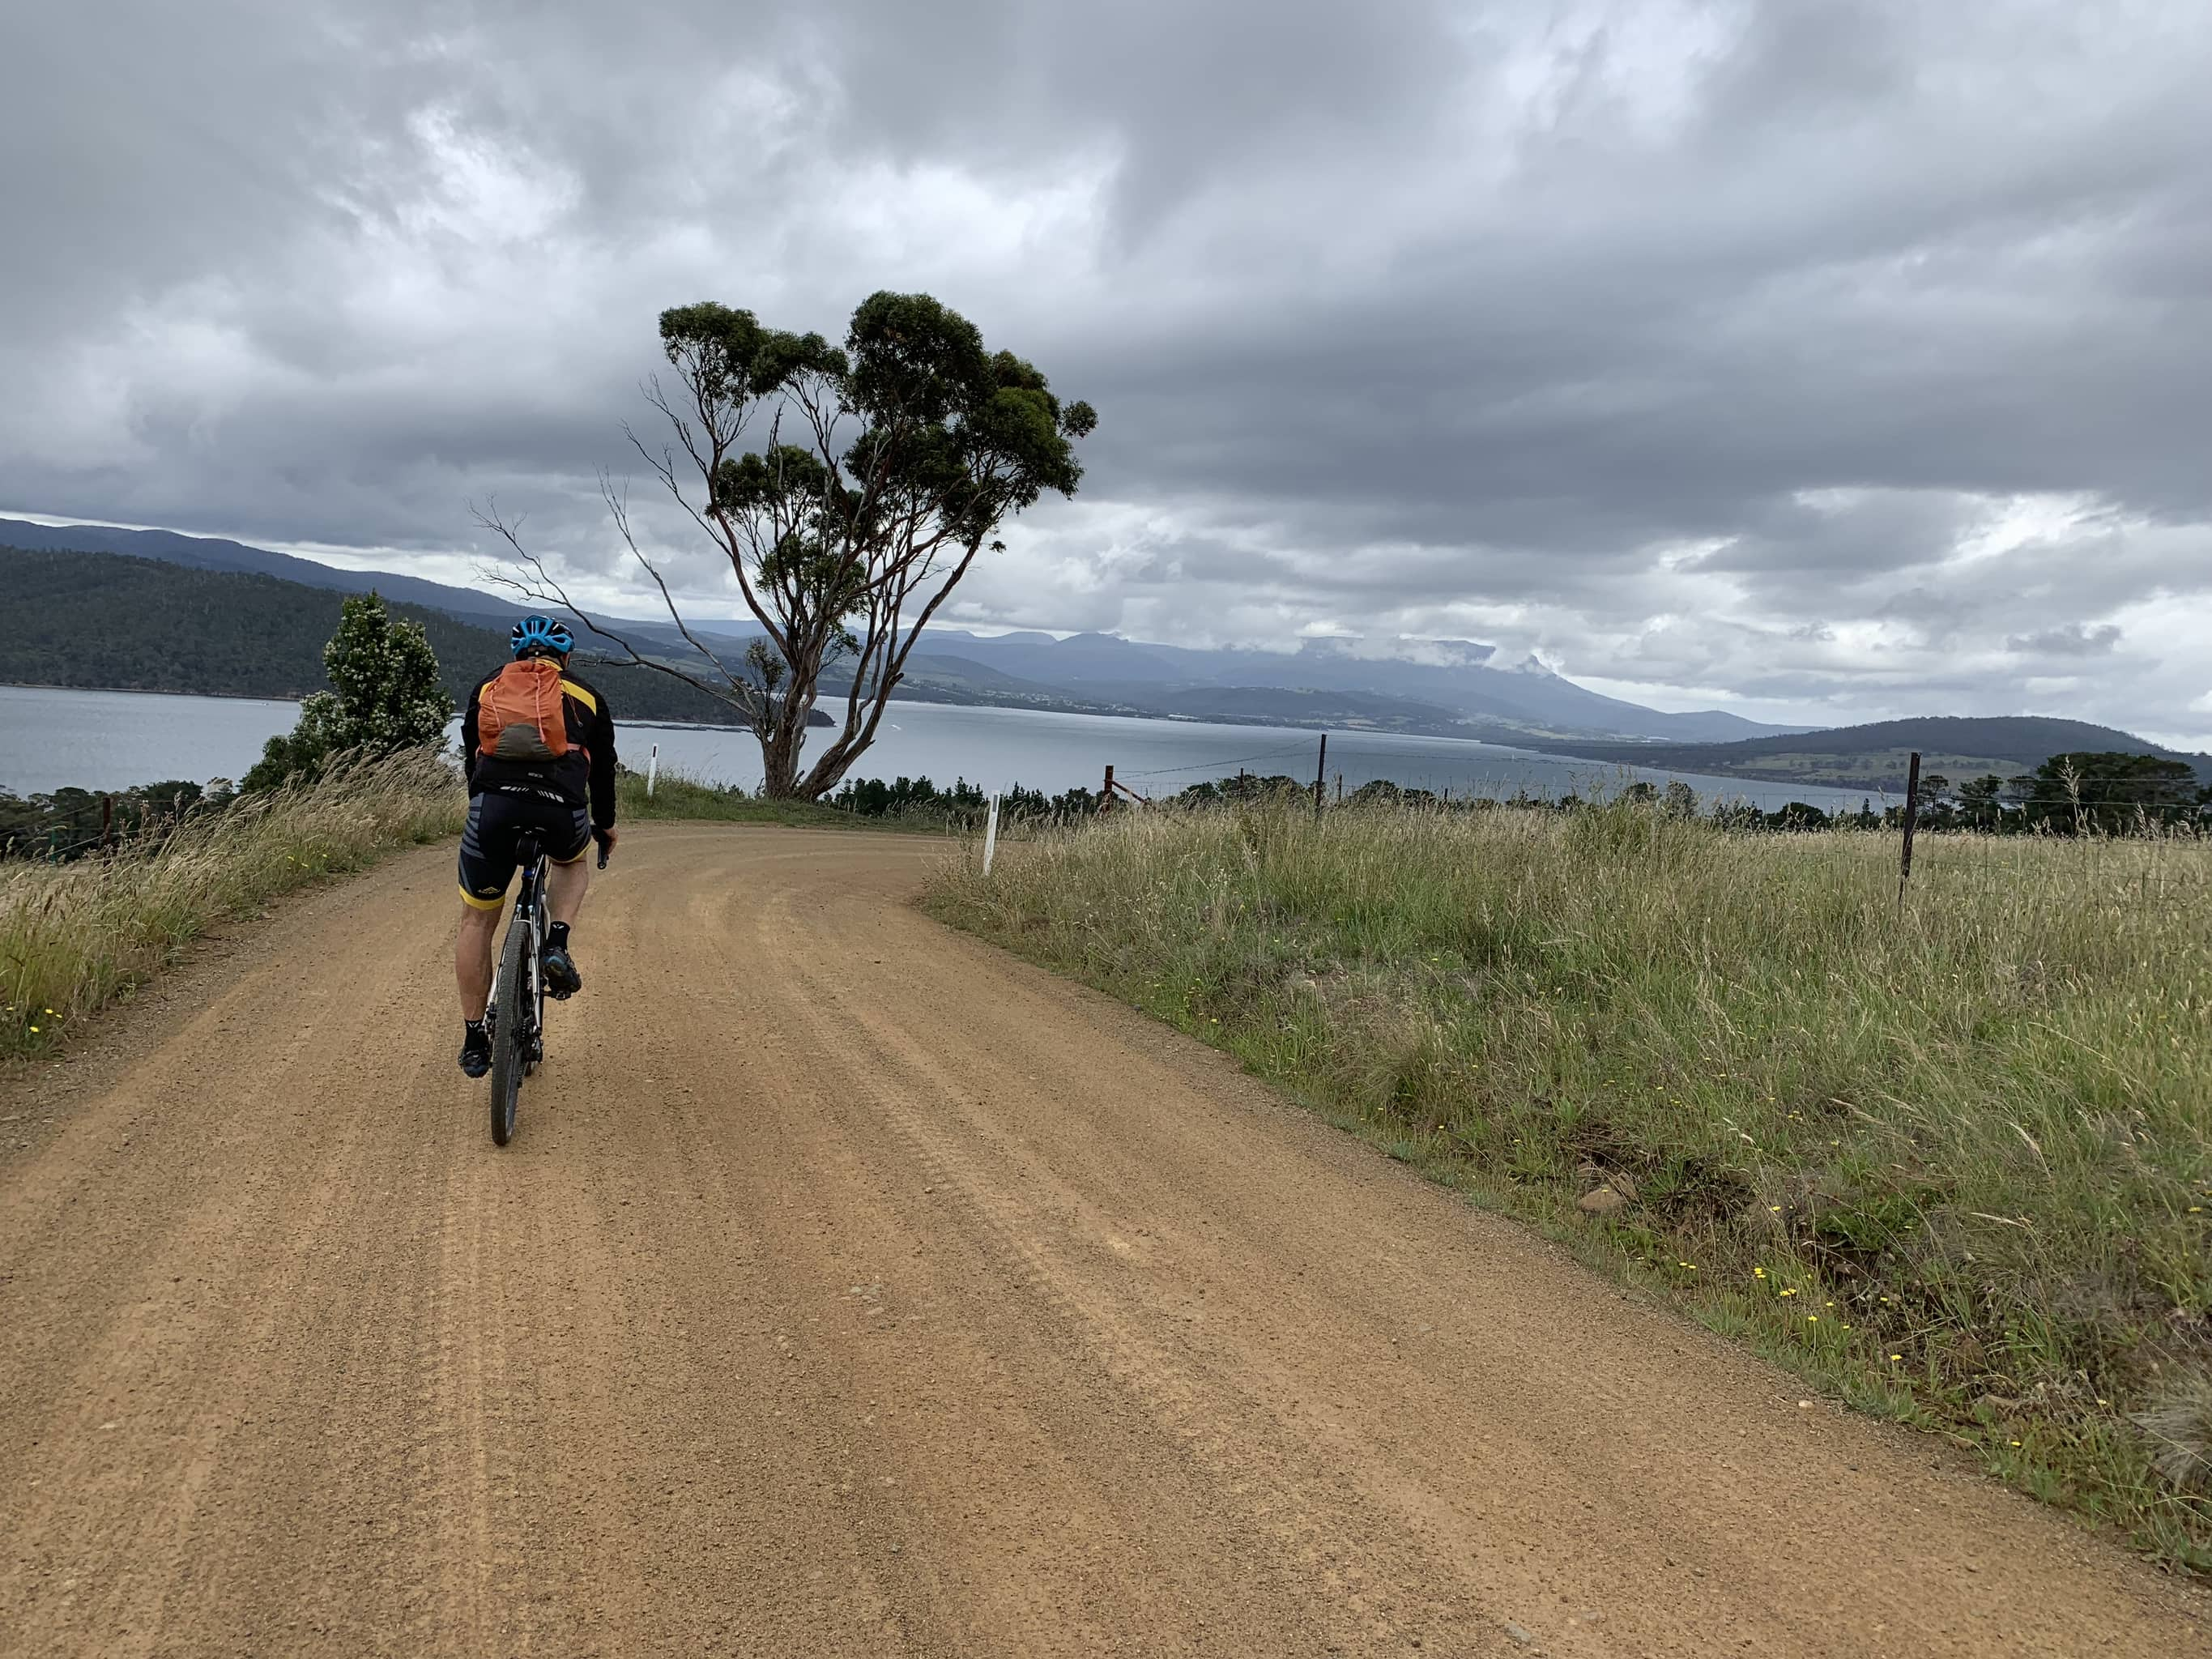 Bike rider on gravel road with ocean bay and Mt. Wellington in distance.